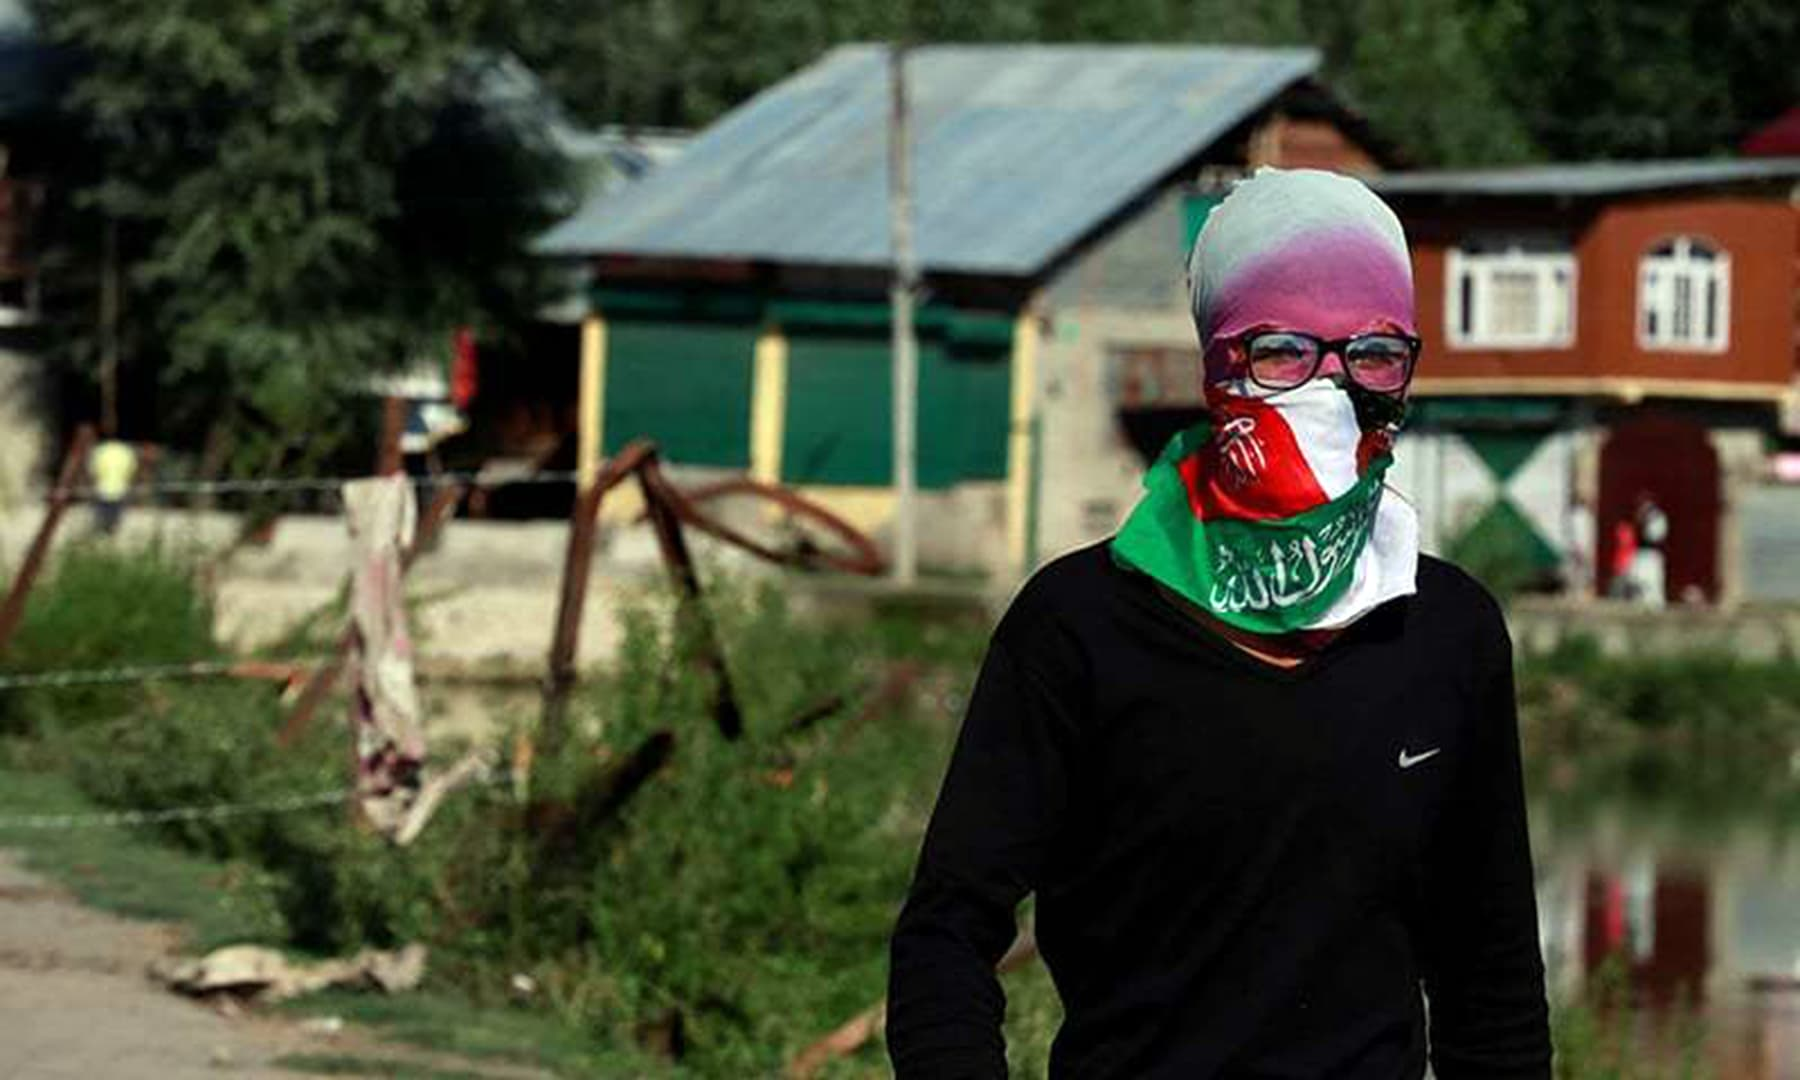 A Kashmiri masked protester stands near a barricade to block the entrance of a neighbourhood in Srinagar, August 19. — Reuters